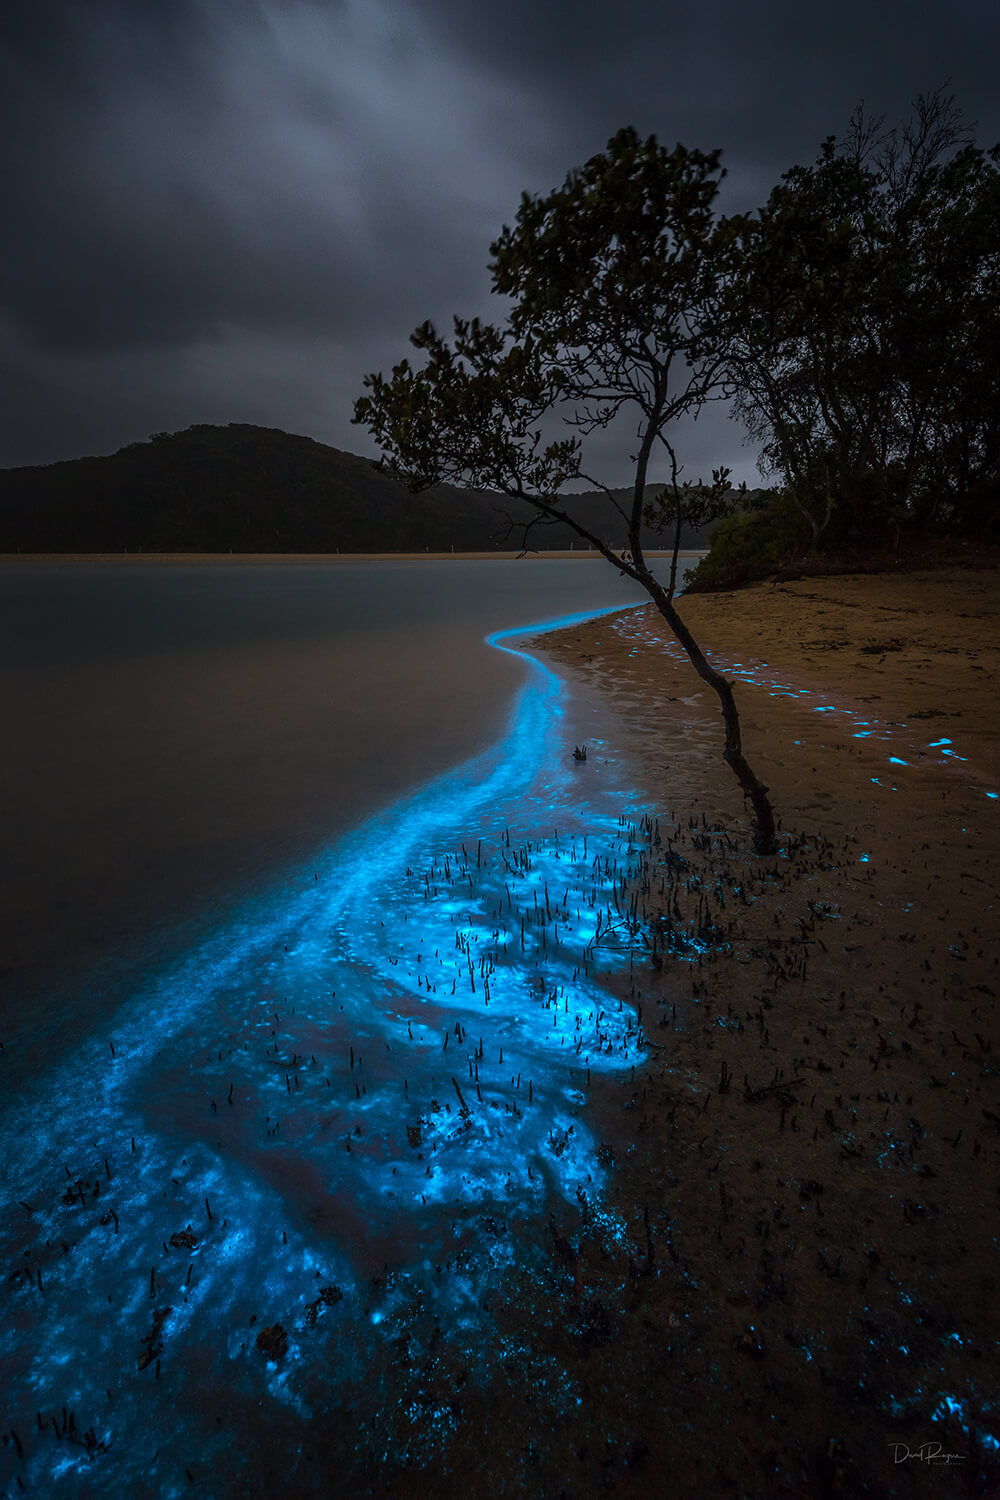 Bioluminescence photo shot on a EOS 6D Mark II and EF 16-35mm f/4L IS USM Lens by Davey Rogers